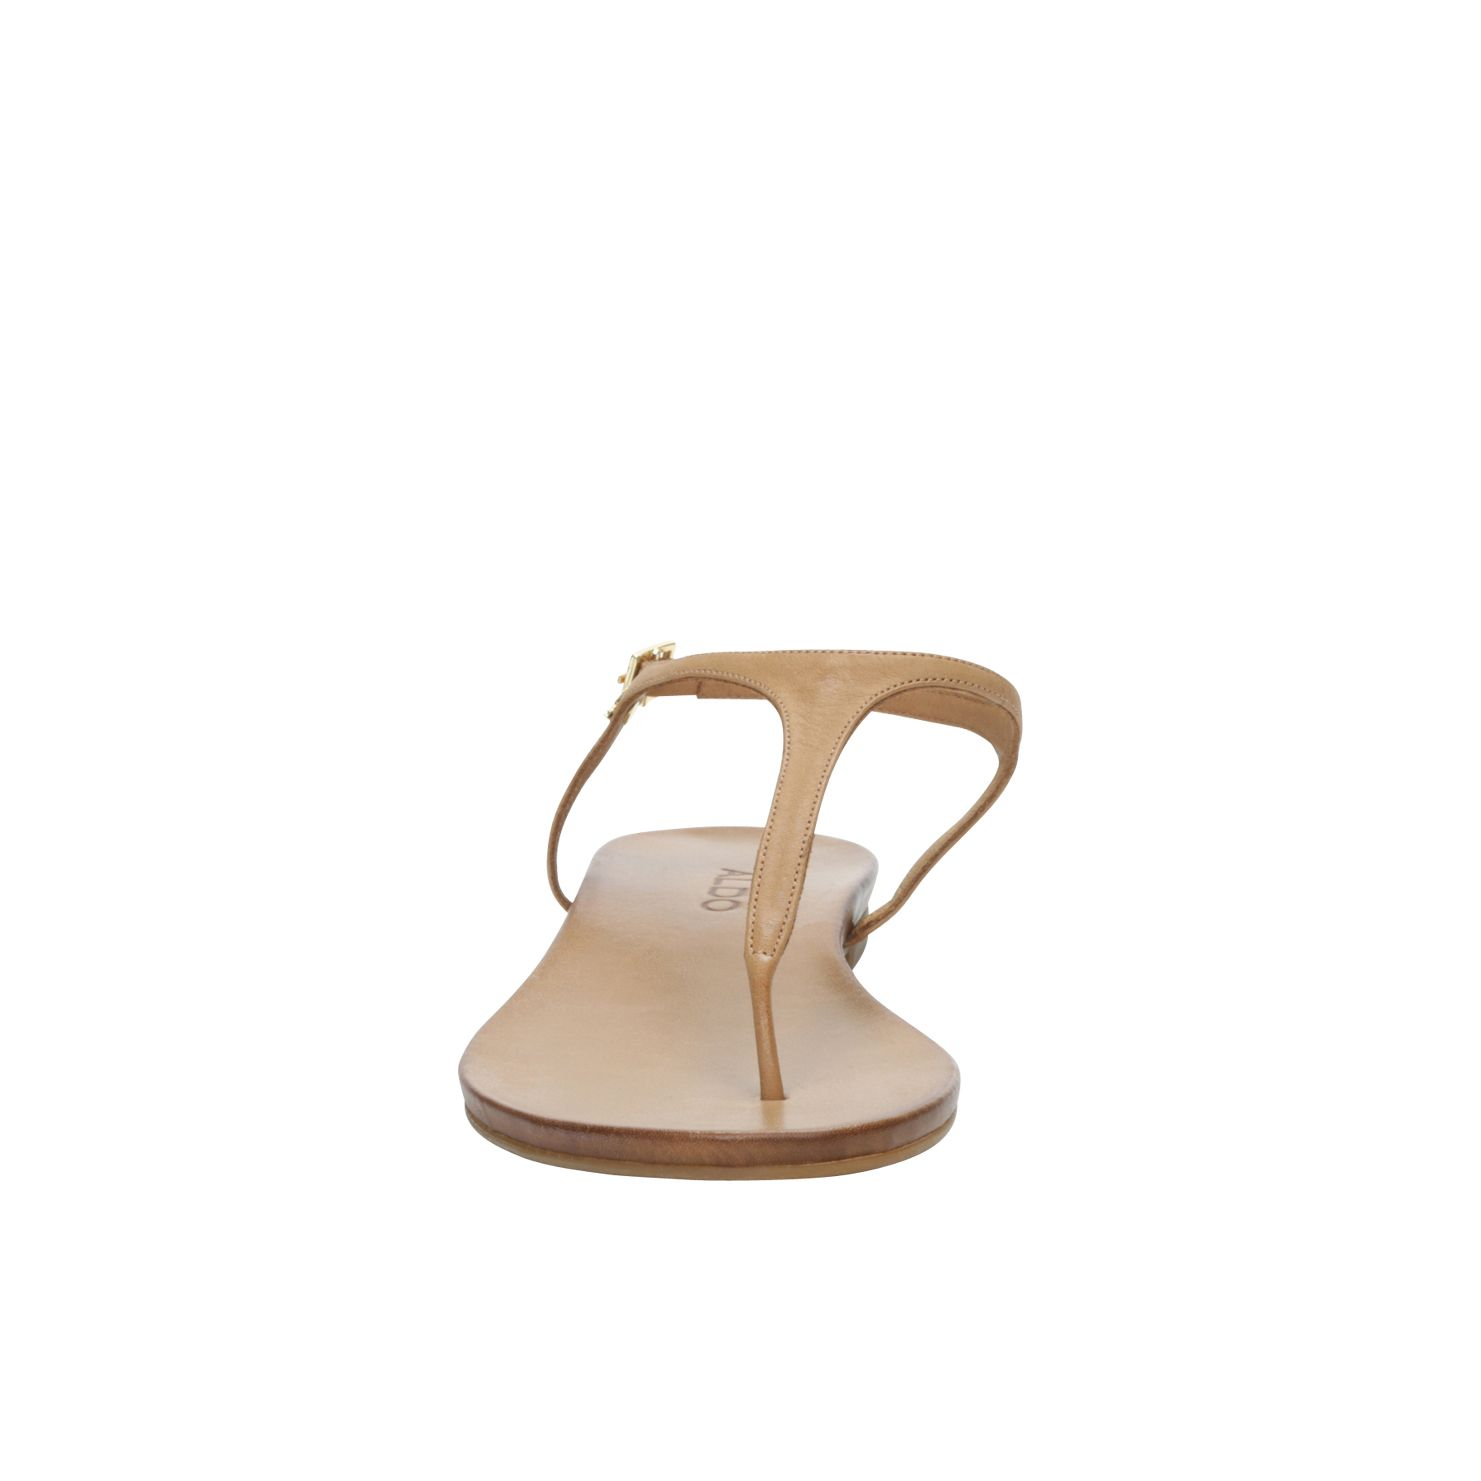 Iberillian flat T-bar sandals